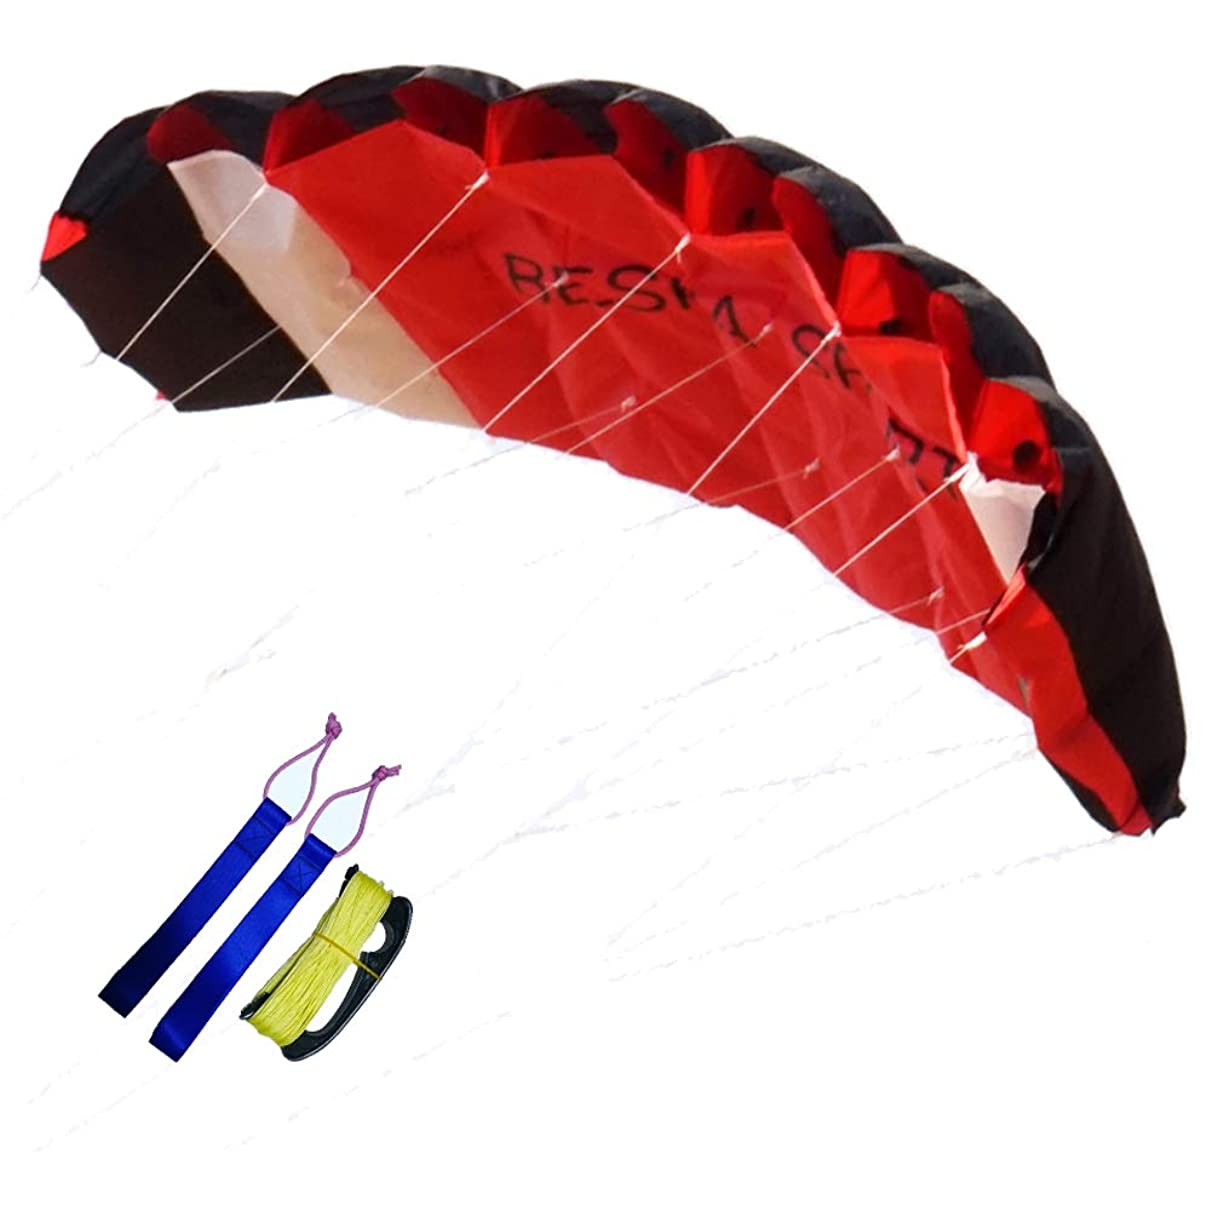 Besra Huge 74inch Dual Line Parachute Stunt Kite with Flying Tools 1.9m Power Parafoil Kitesurfing Training Kites Outdoor Fun Sports for Beach